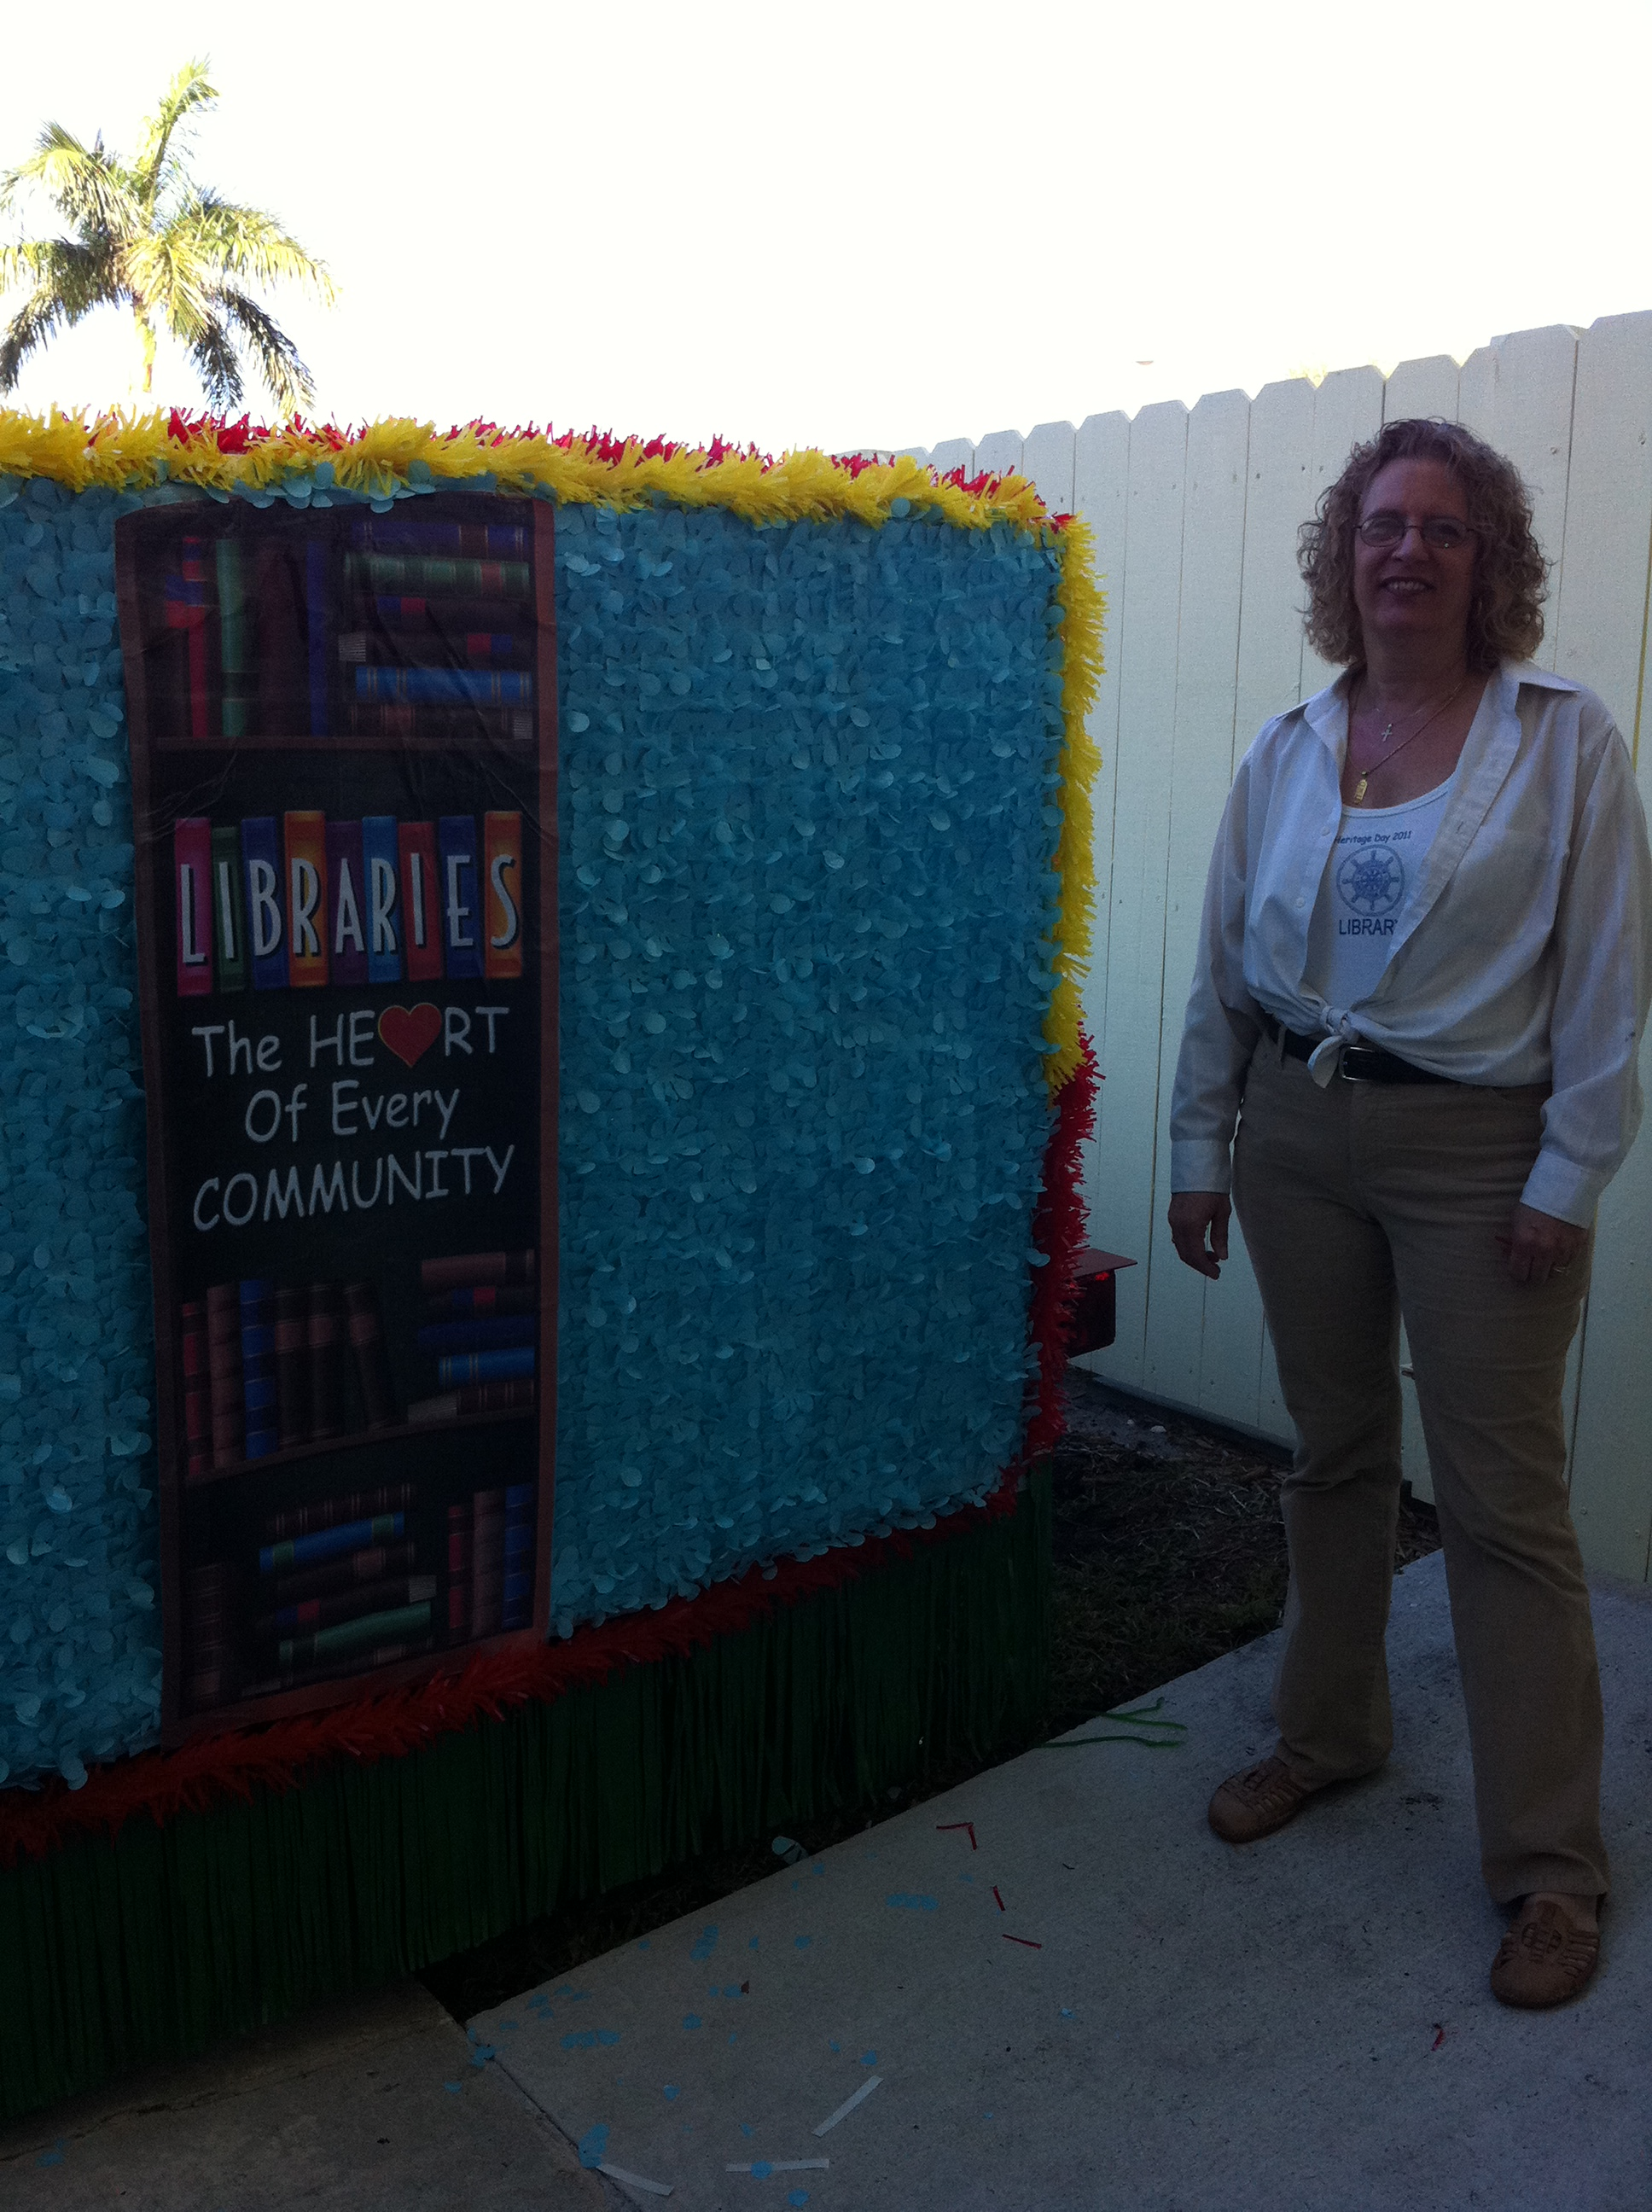 A participant stands next to the Library's Float